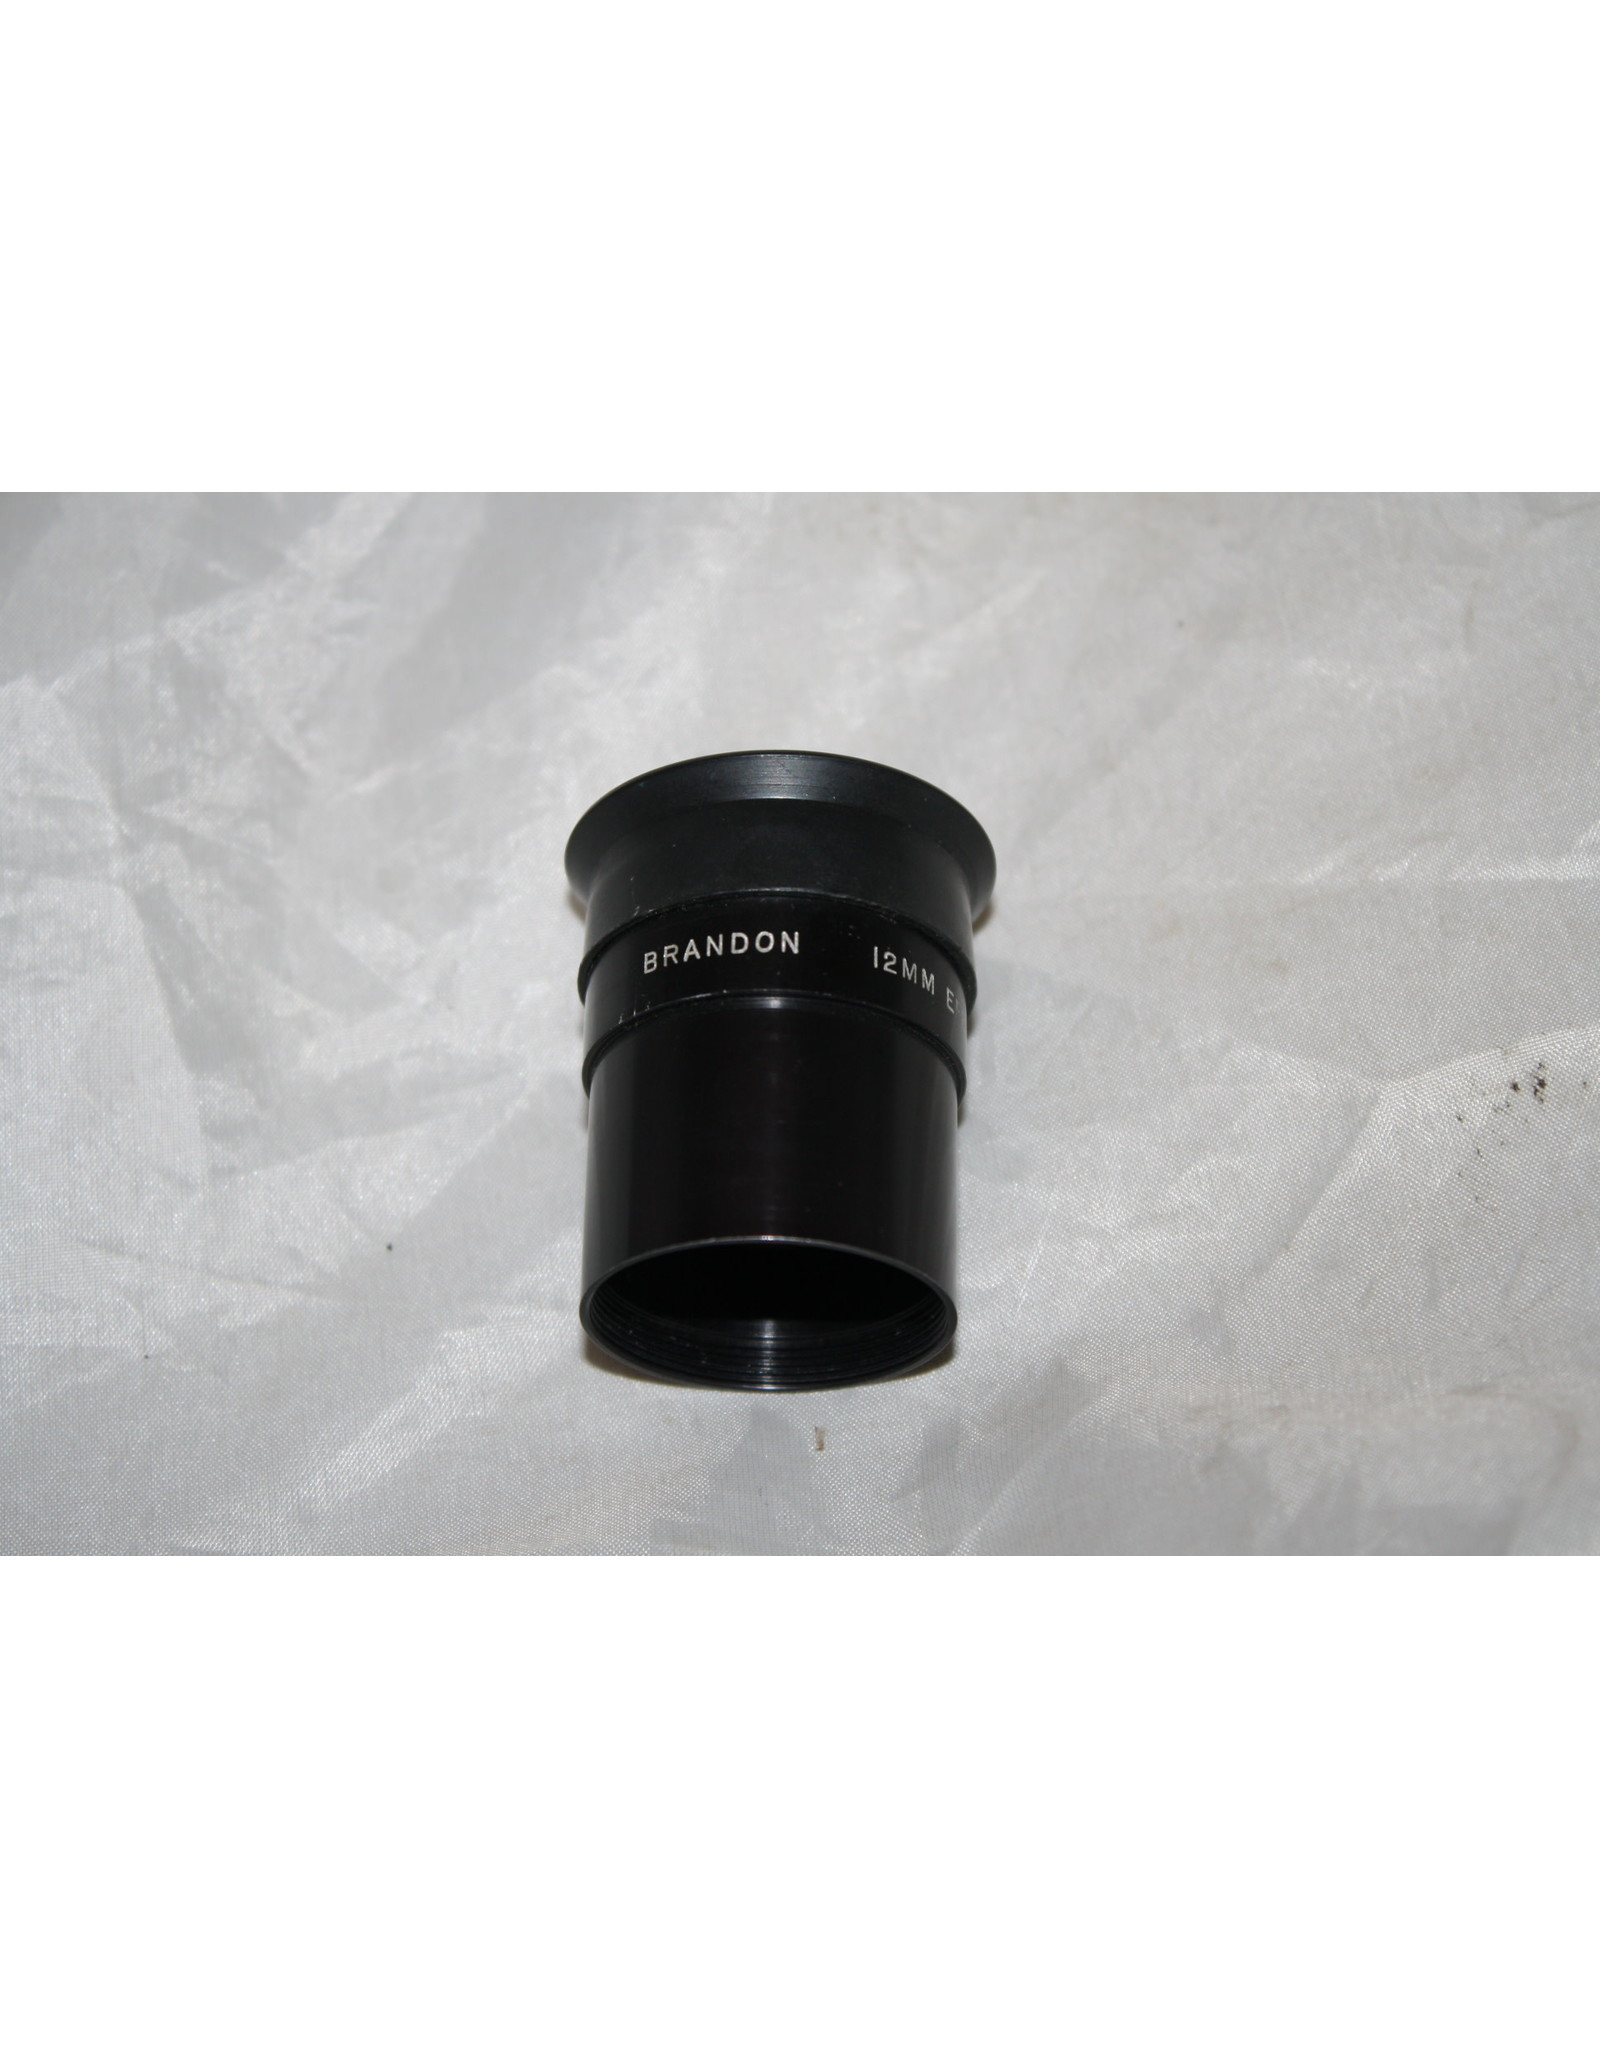 """Brandon 12mm 1.25"""" Vintage Ocular Vernonscope With Rubber Eyecup (Pre-owned)"""